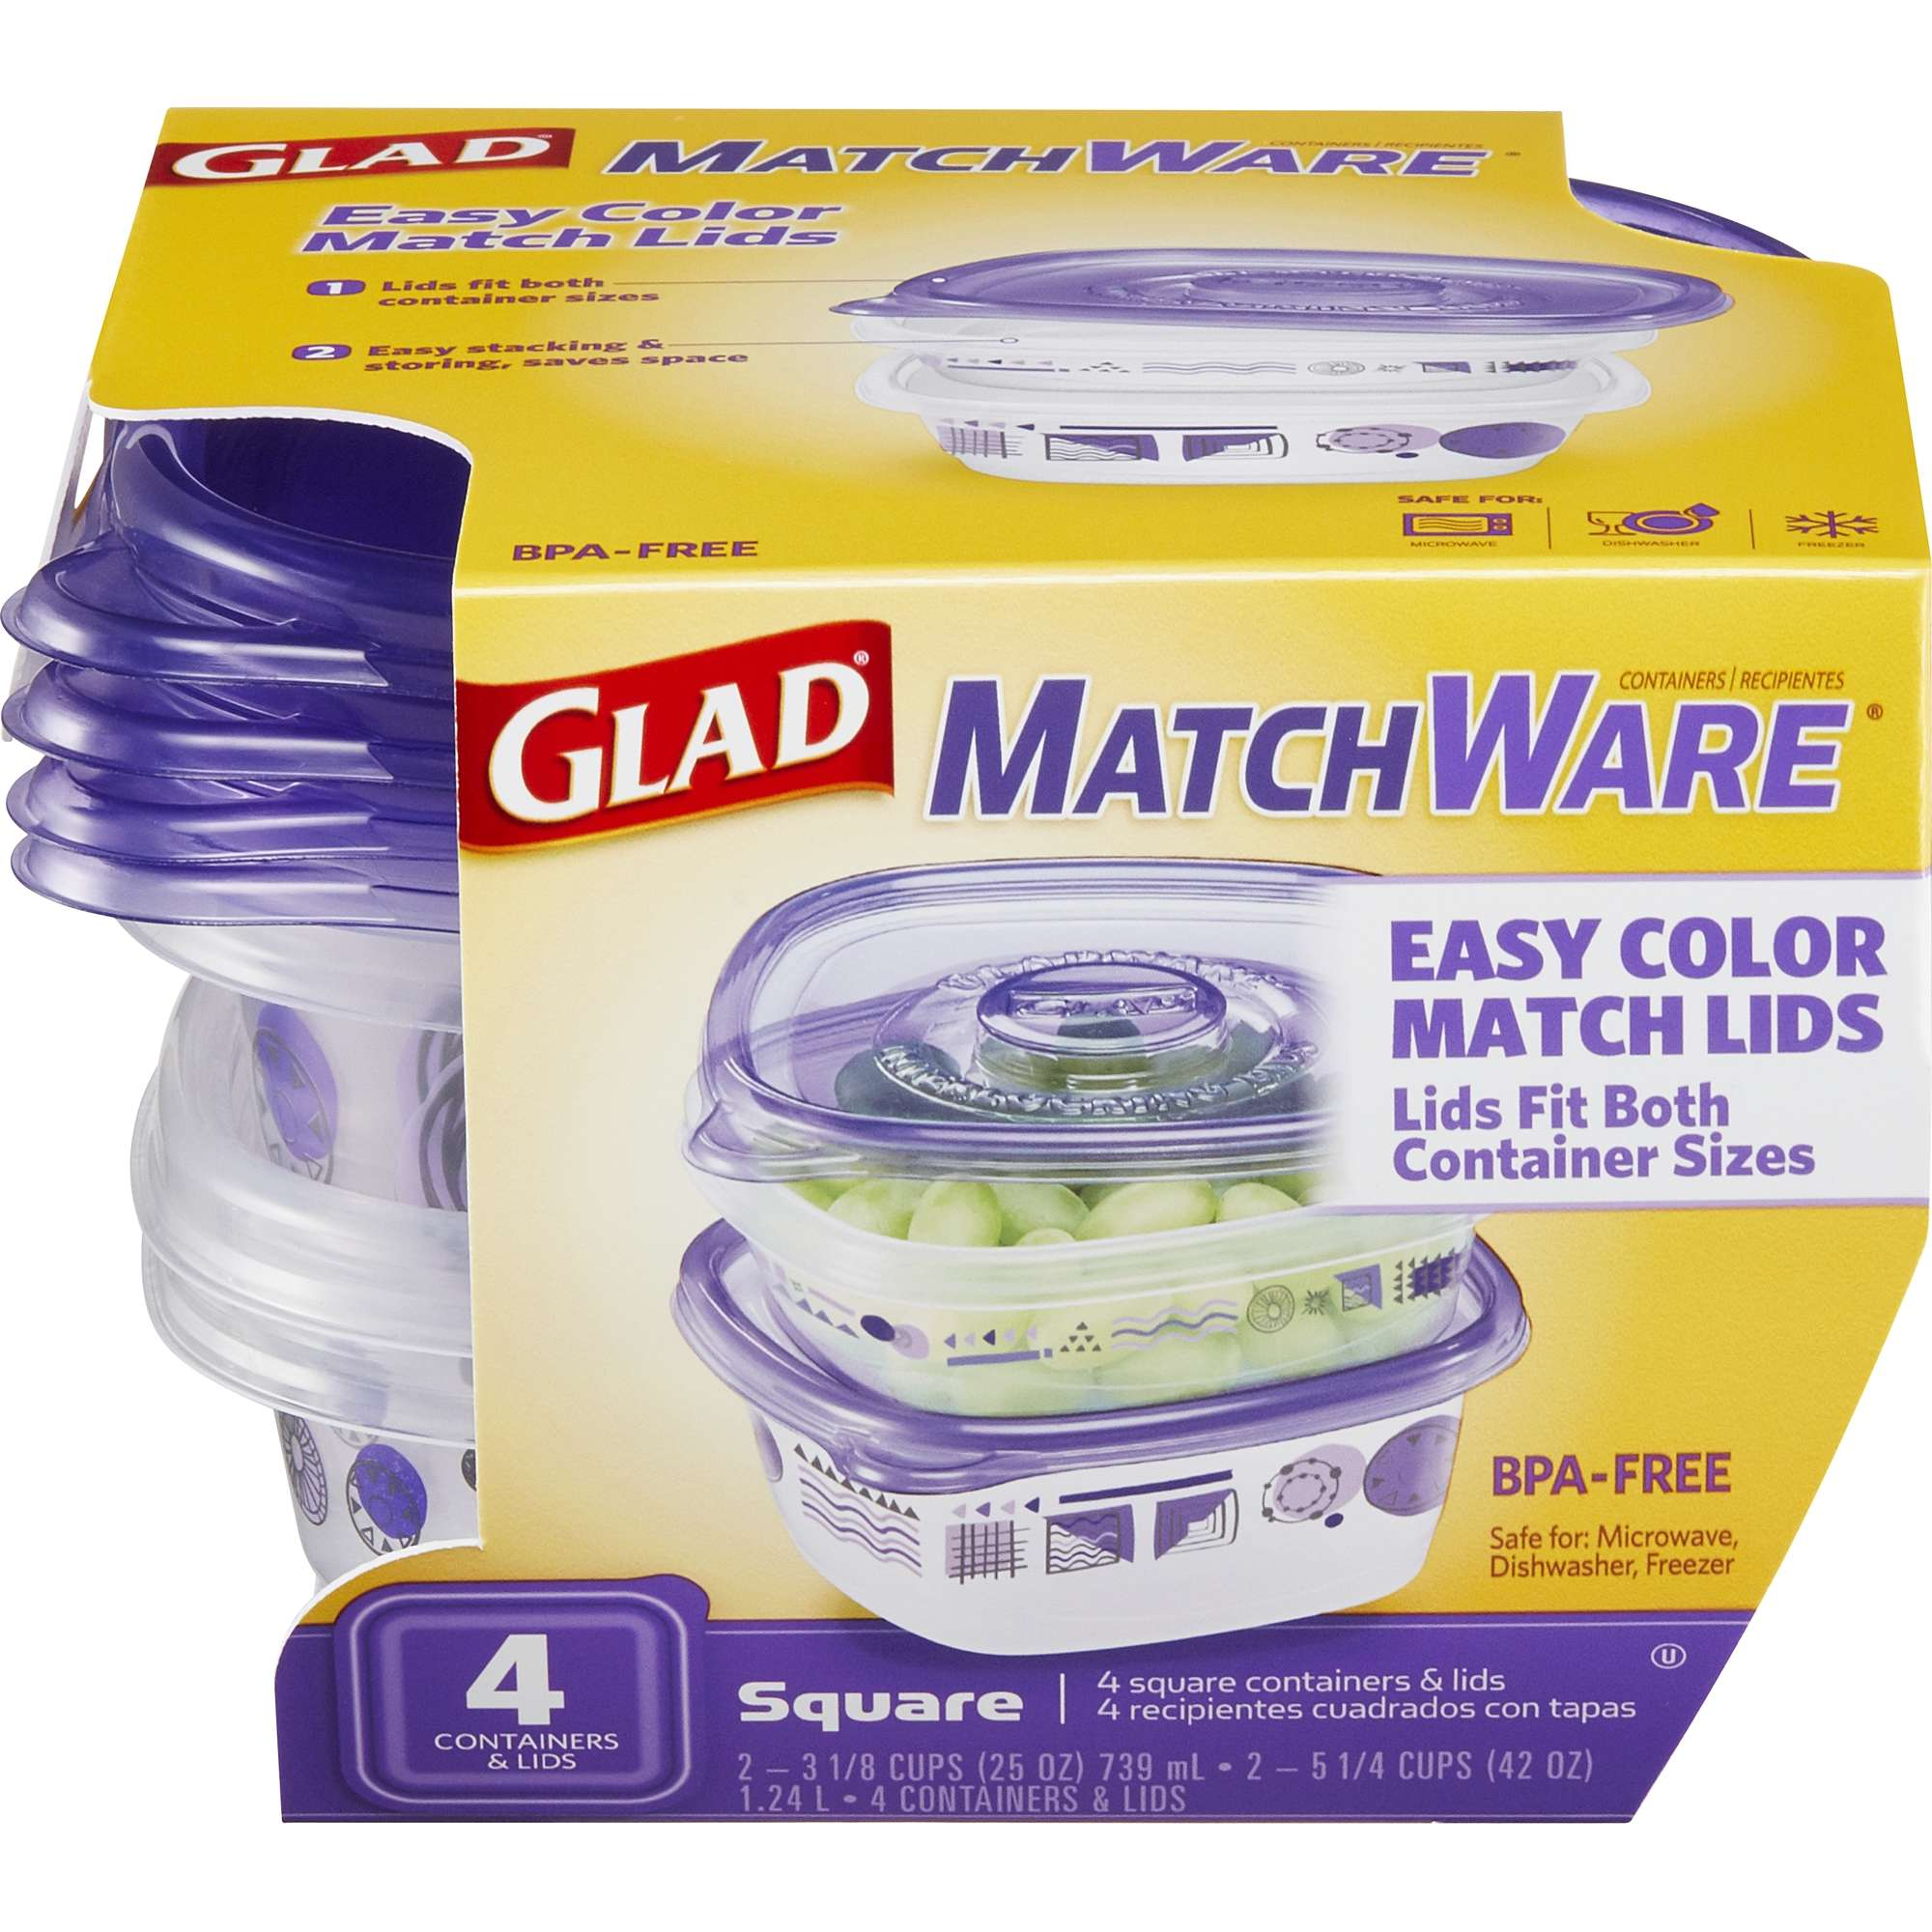 Glad Food Storage Containters - Glad MatchWare Square Containers - Two 25 oz - Two 42 oz